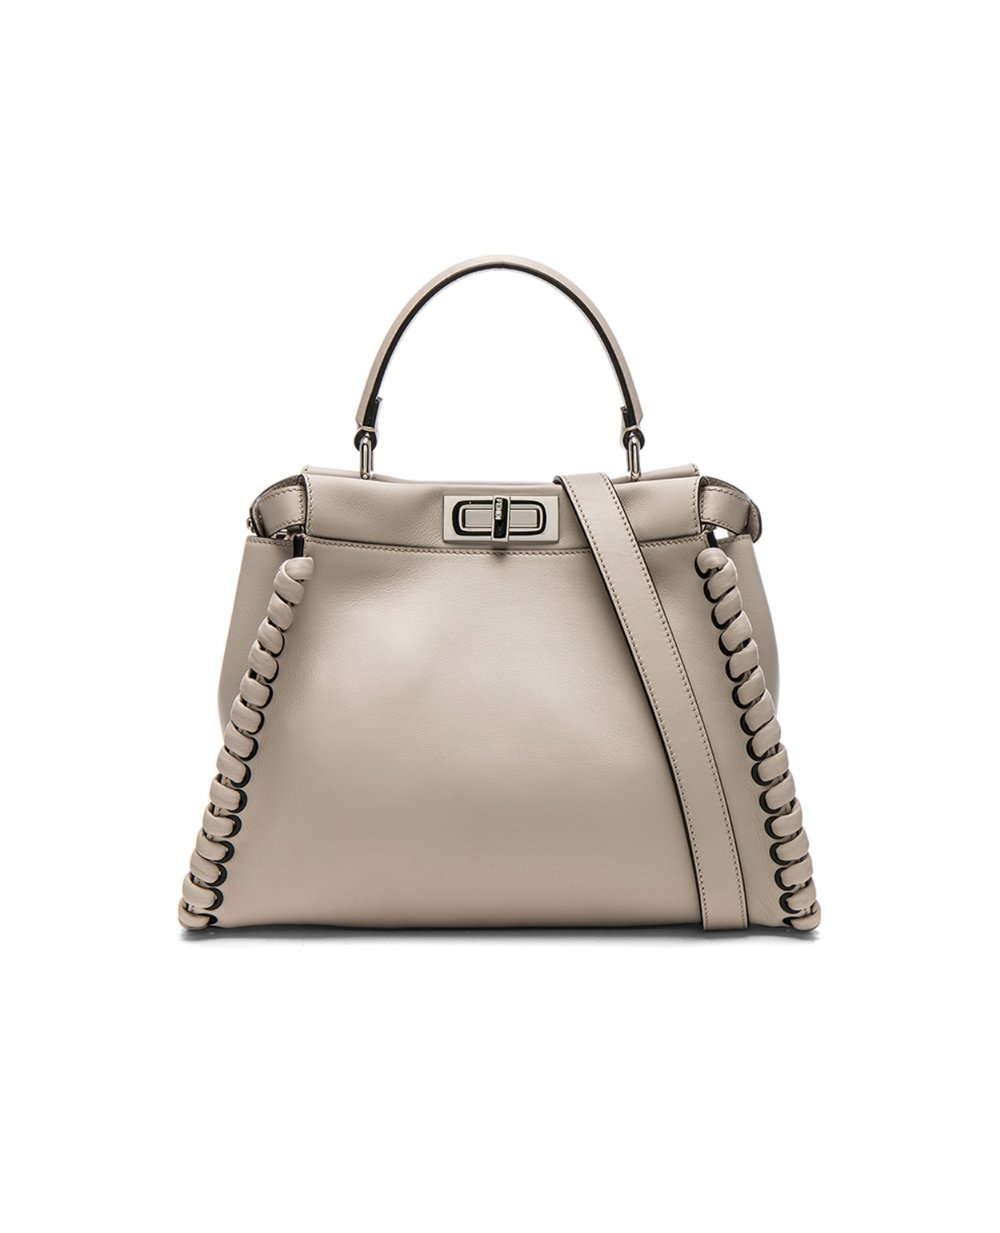 Fendi Peek-a-boo Mini - $3,650